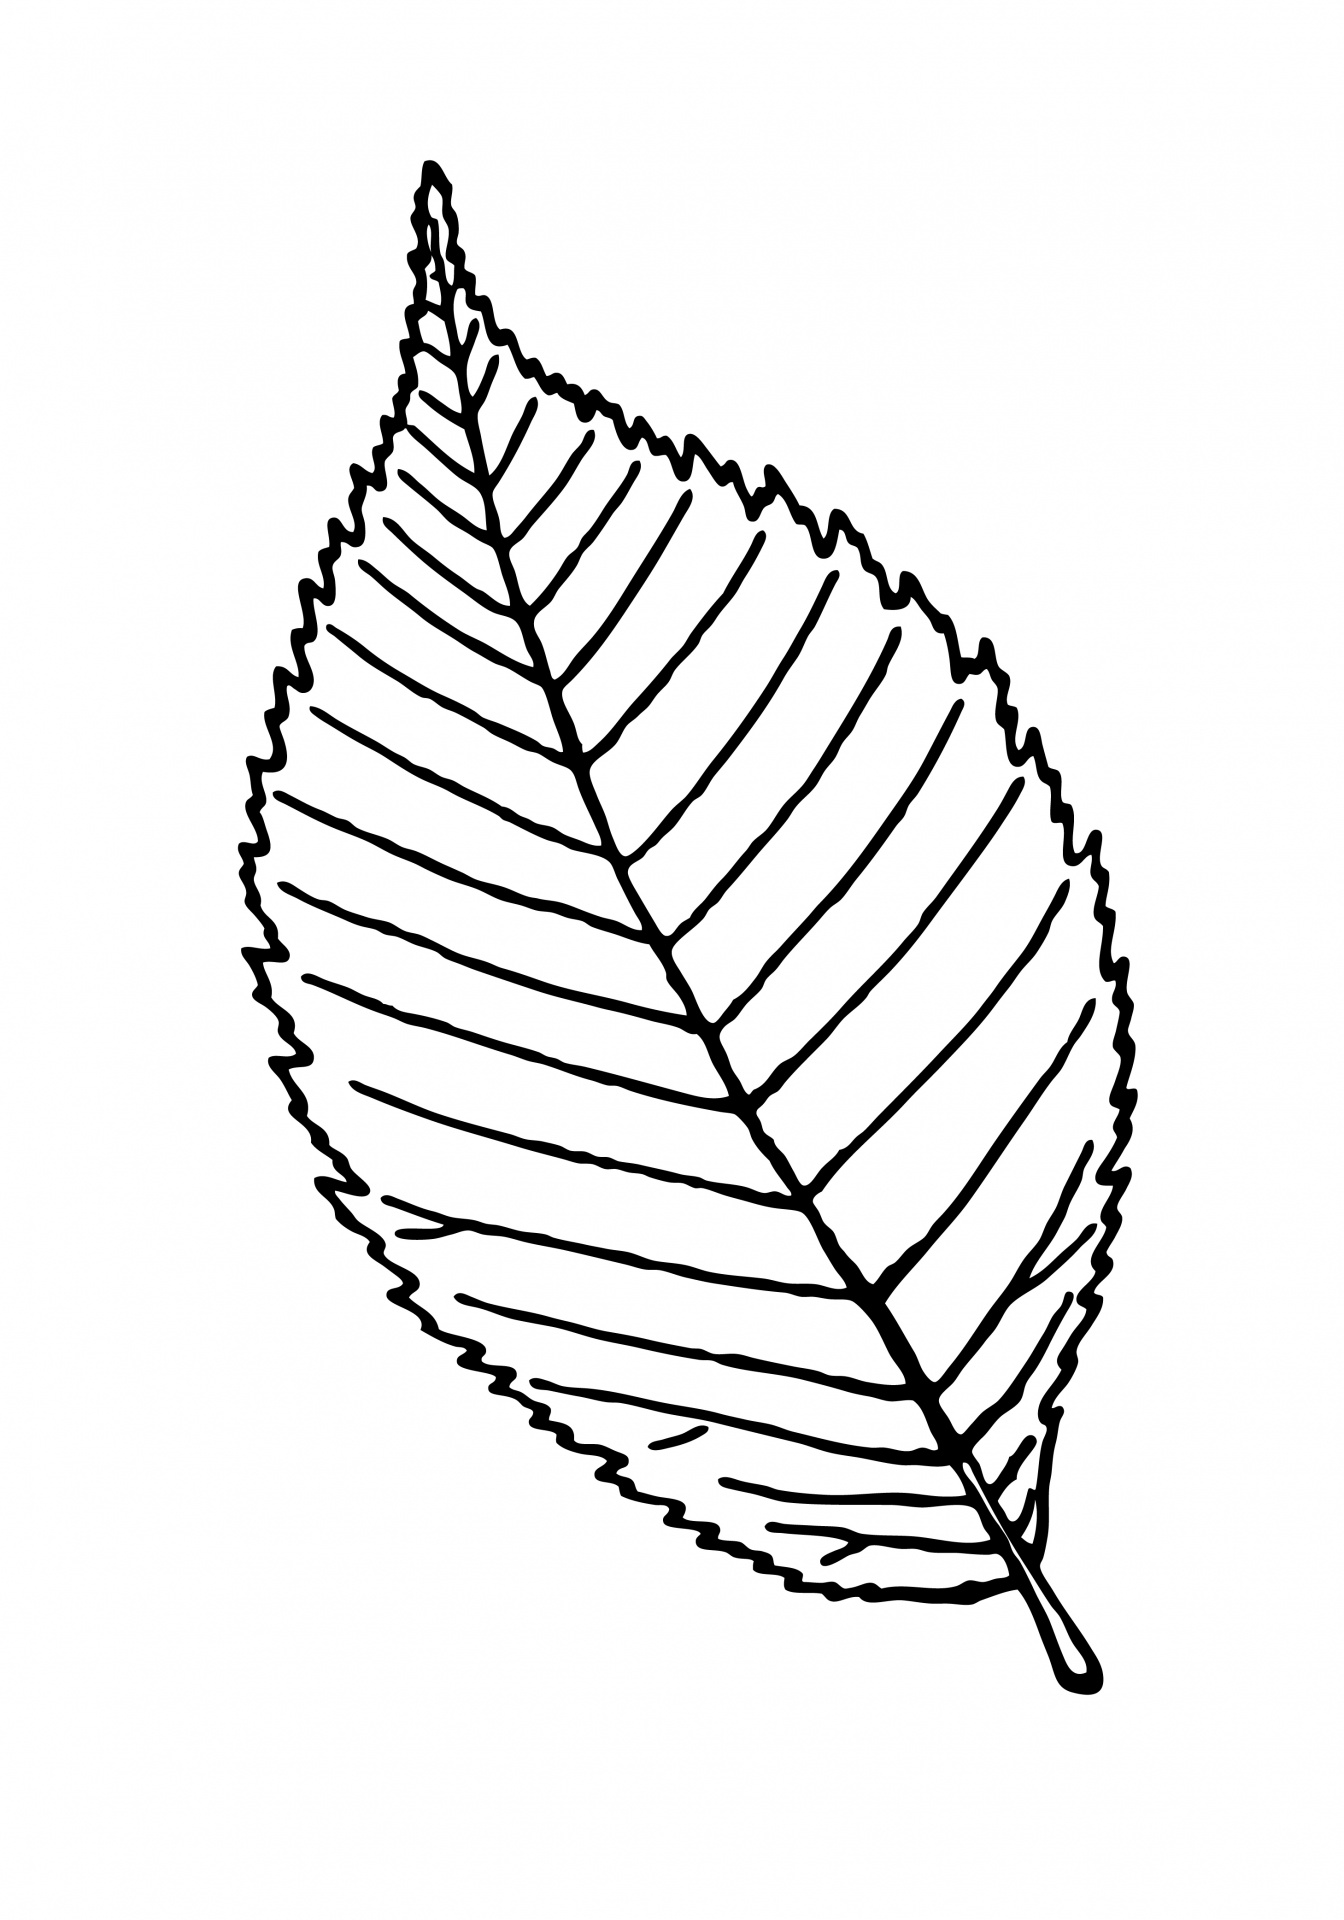 Maple leaf outline clipart 3 clipart